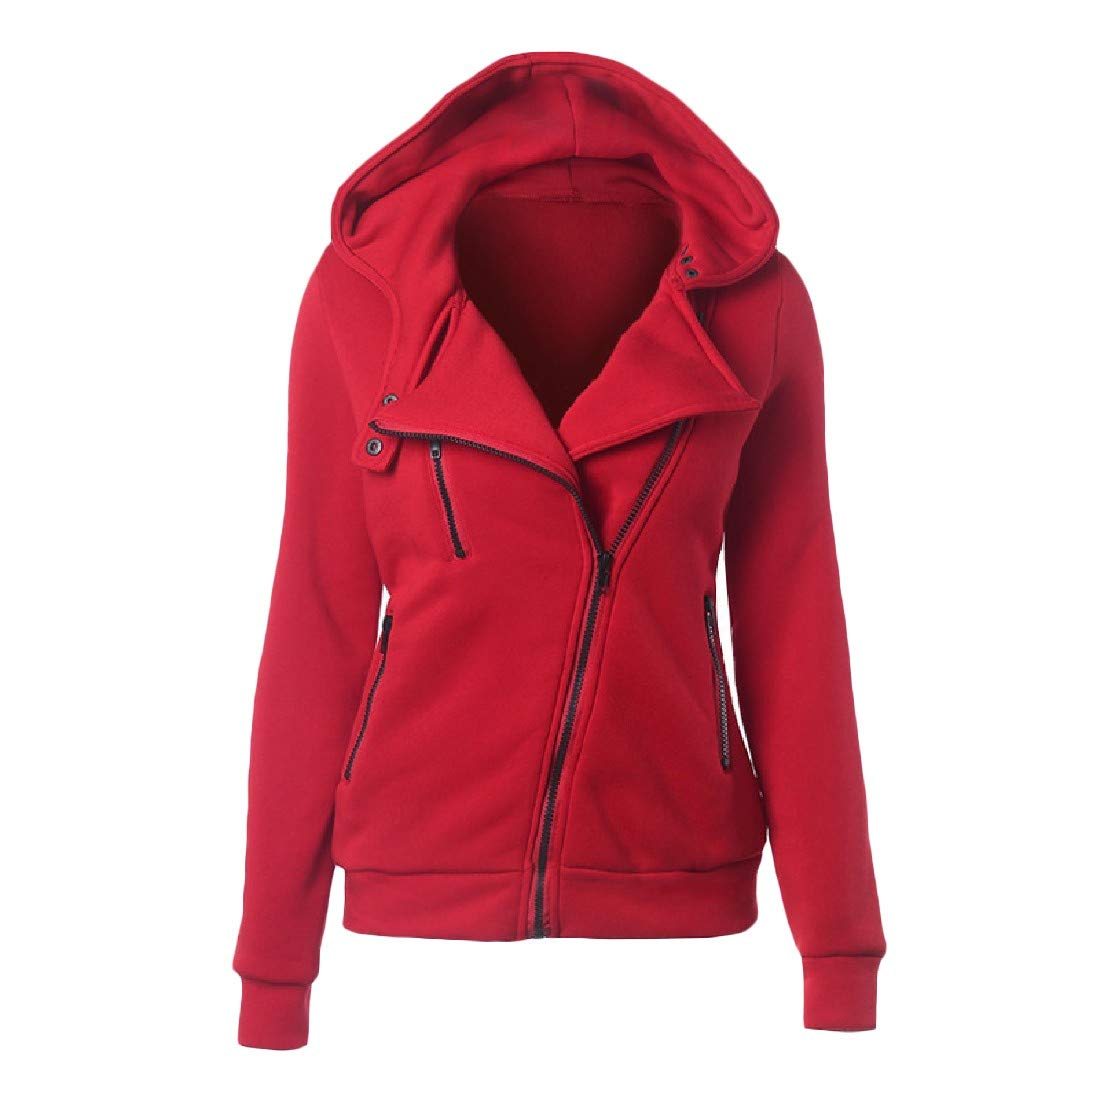 YUNY Women Hooded Solid Colored Zip-up Pullover Sweatshirt Red 3XL